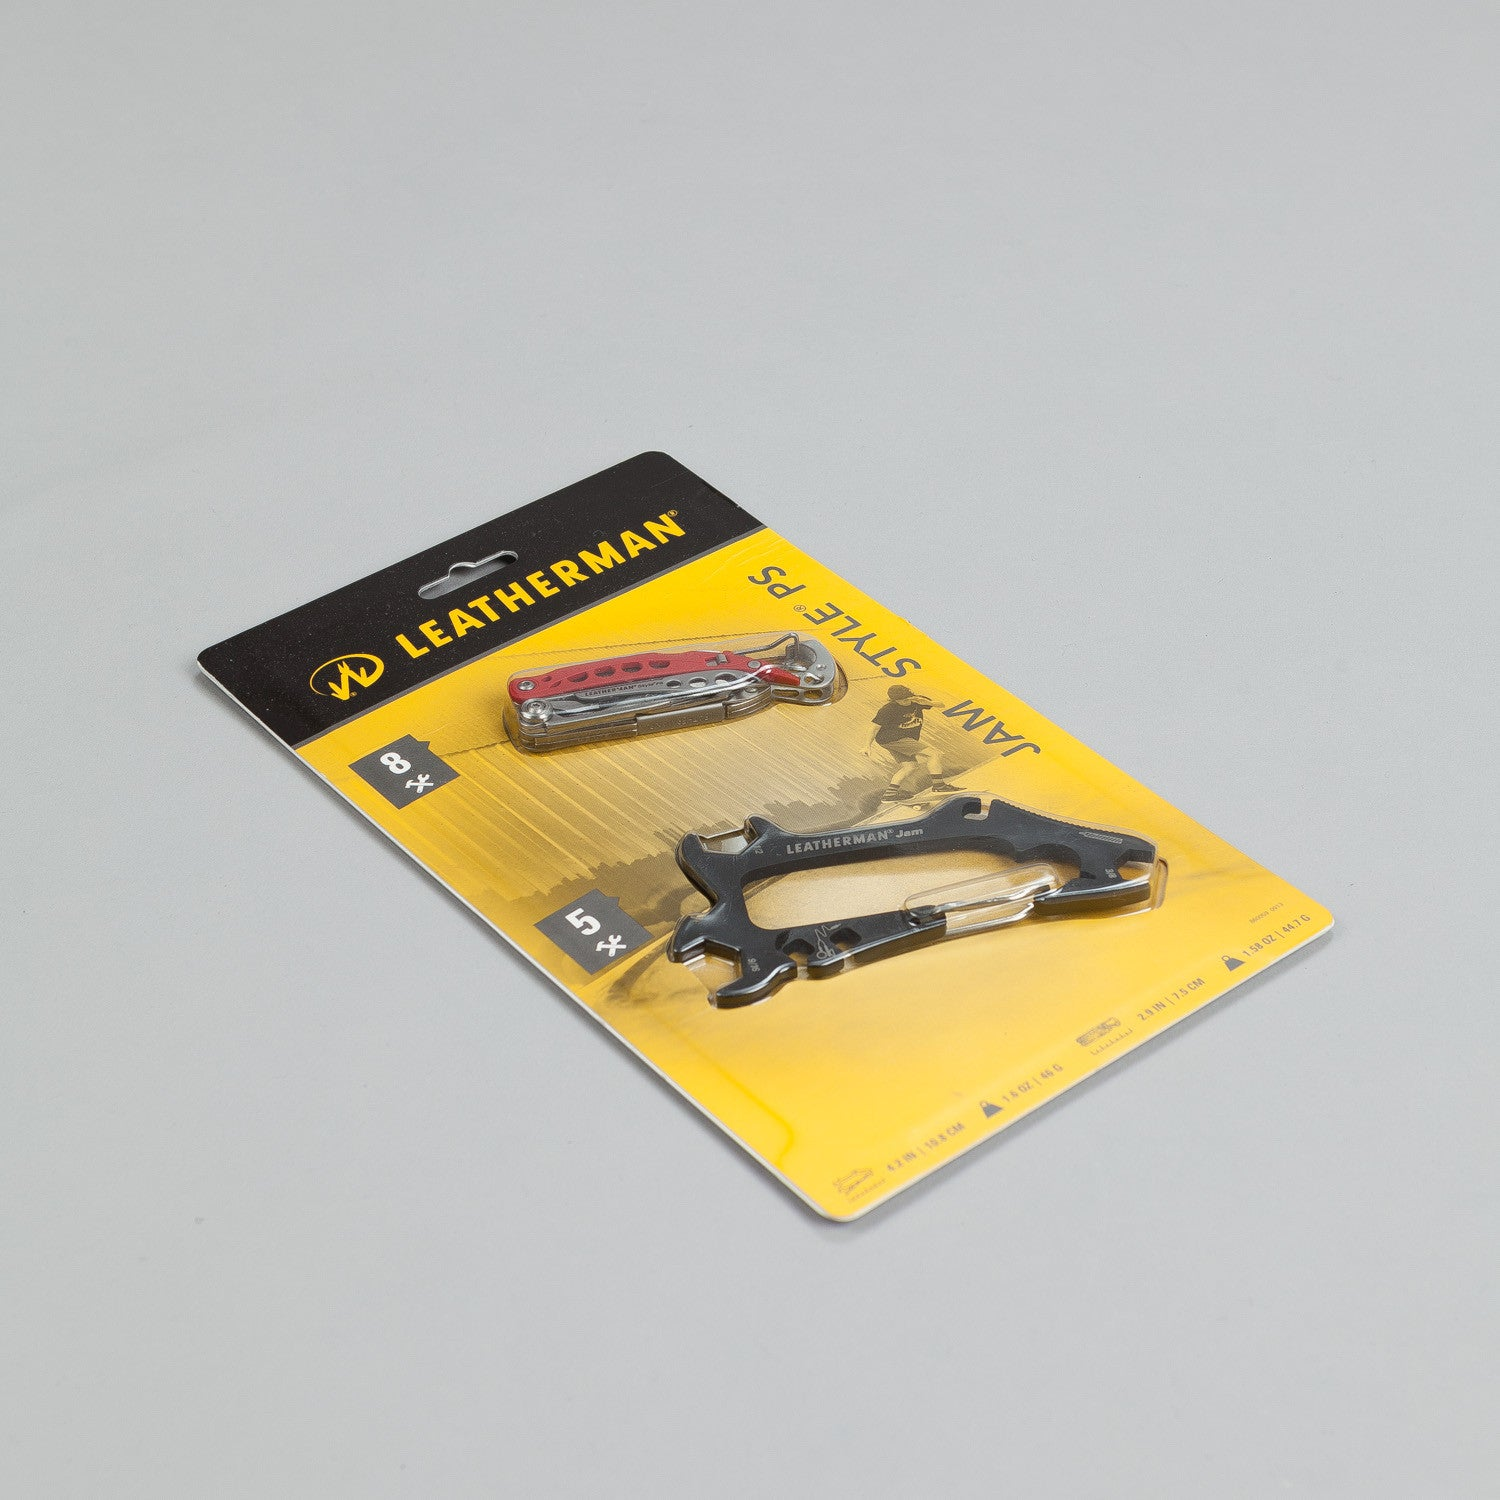 Leatherman Jam and Style PS - 13 Tools In One